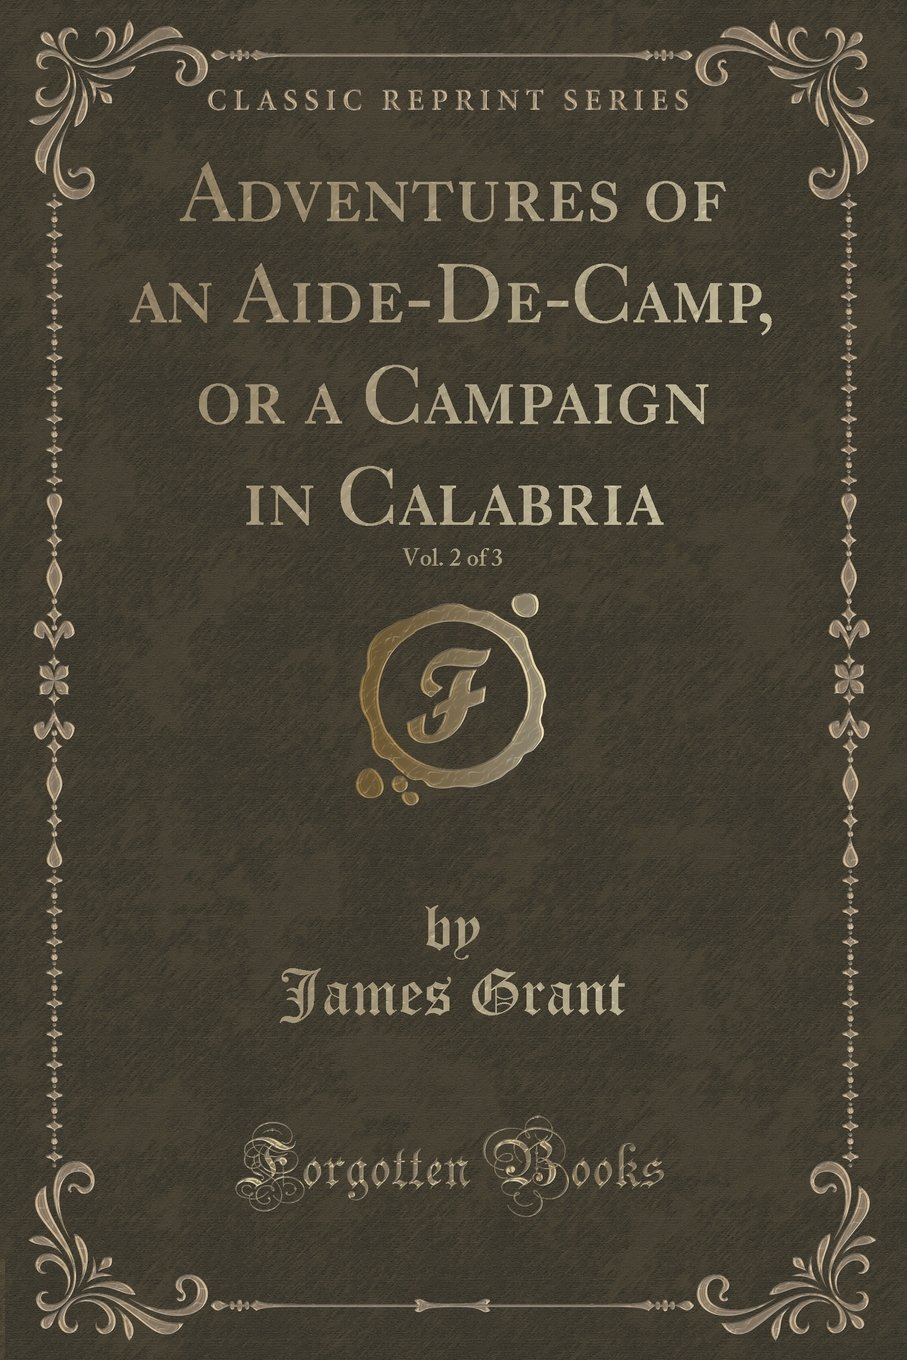 Adventures of an Aide-De-Camp, or a Campaign in Calabria, Vol. 2 of 3 (Classic Reprint) pdf